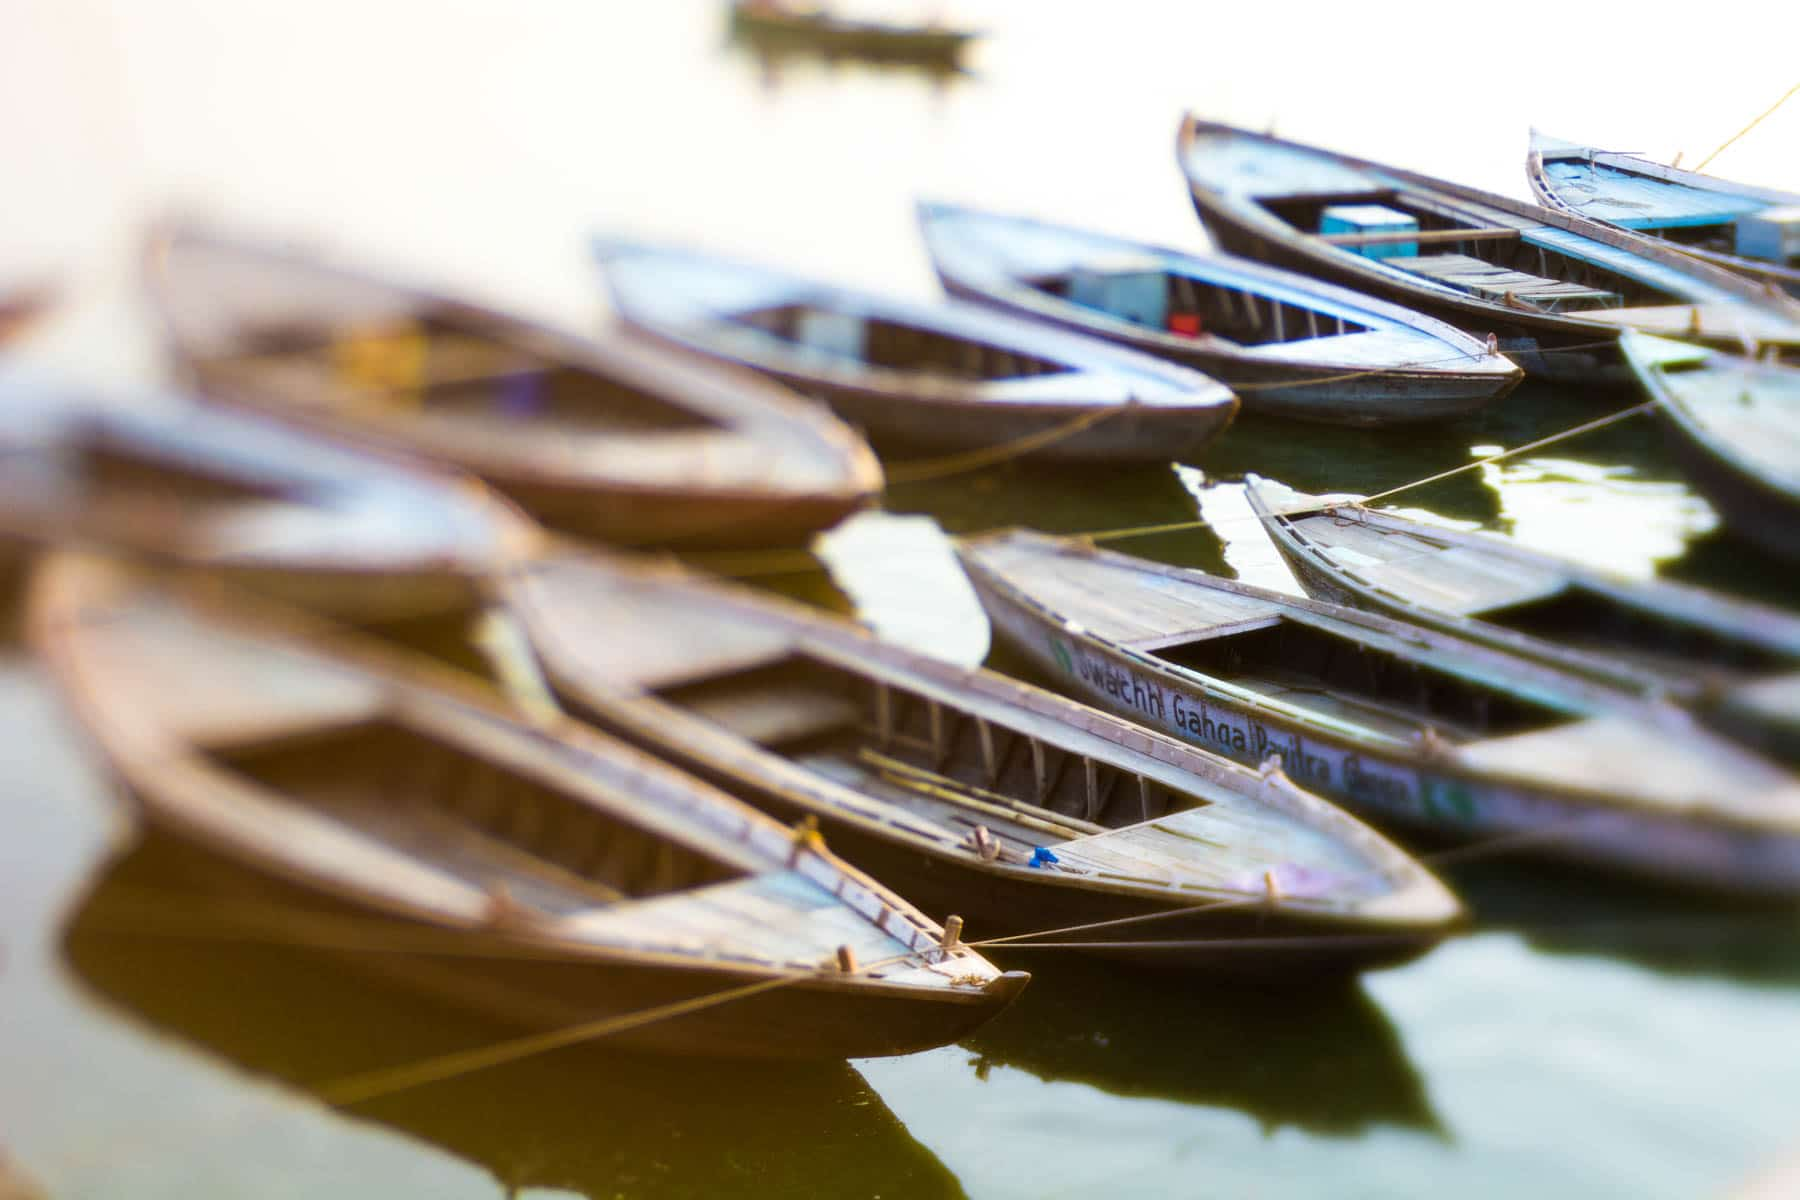 Lensbaby Edge 50 Optic review - Boats on the Ganges at sunrise in Varanasi, India - Lost With Purpose